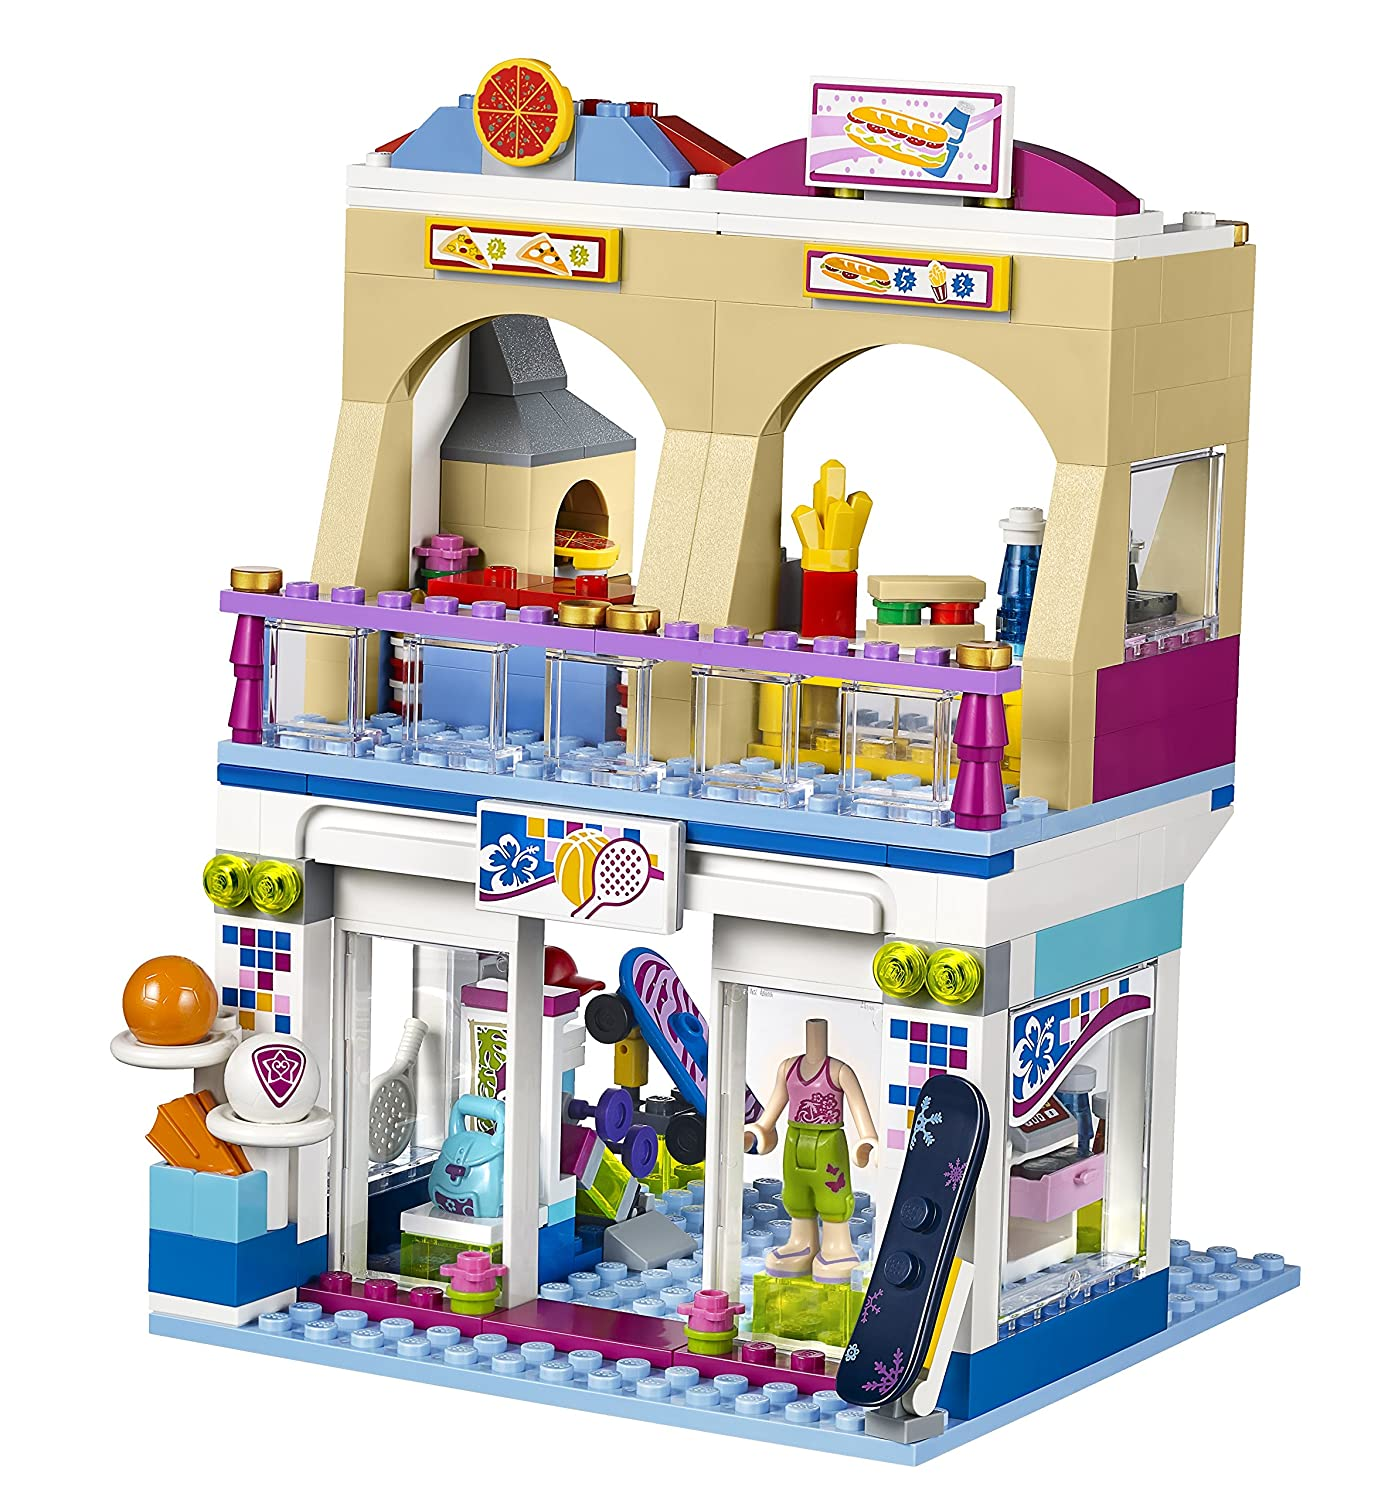 Lego friends heartlake grand hotel 41101 lego friends uk - Amazon Com Lego Friends Heartlake Shopping Mall Building Set 41058 Toys Games